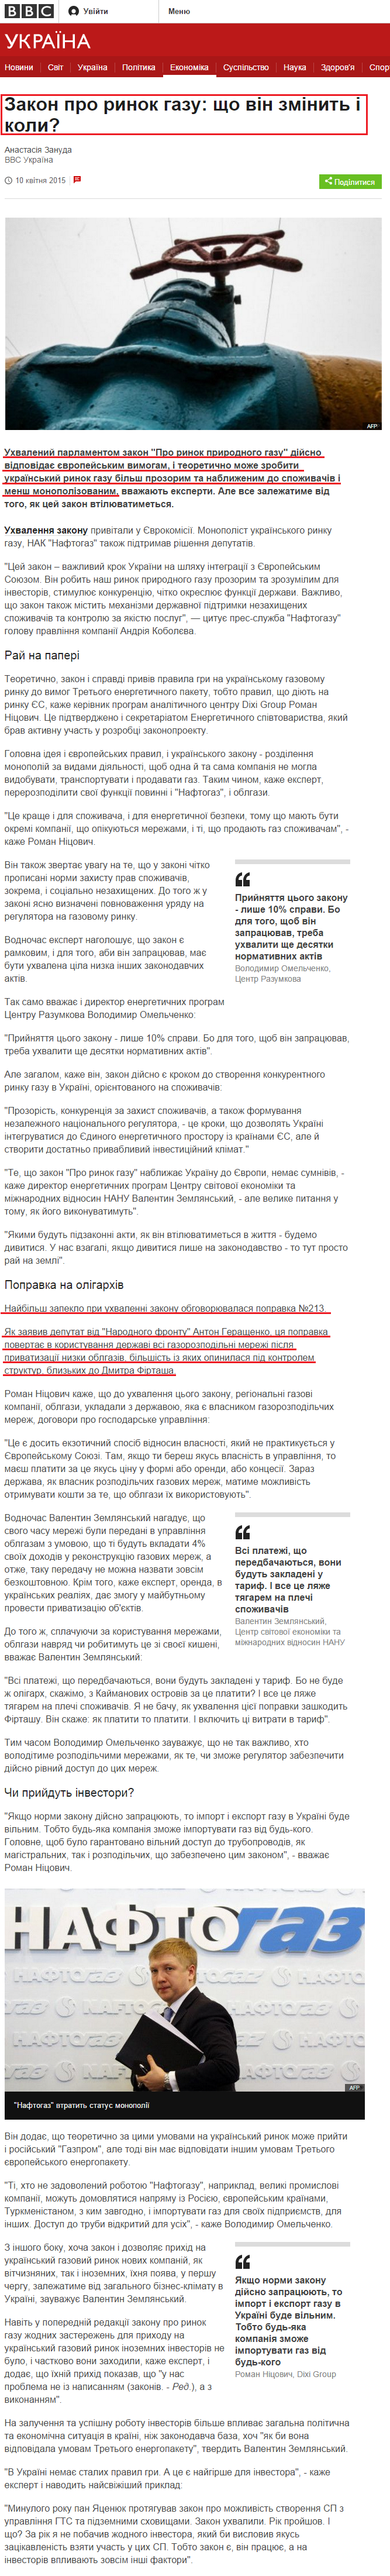 http://www.bbc.com/ukrainian/business/2015/04/150410_gas_market_law_az